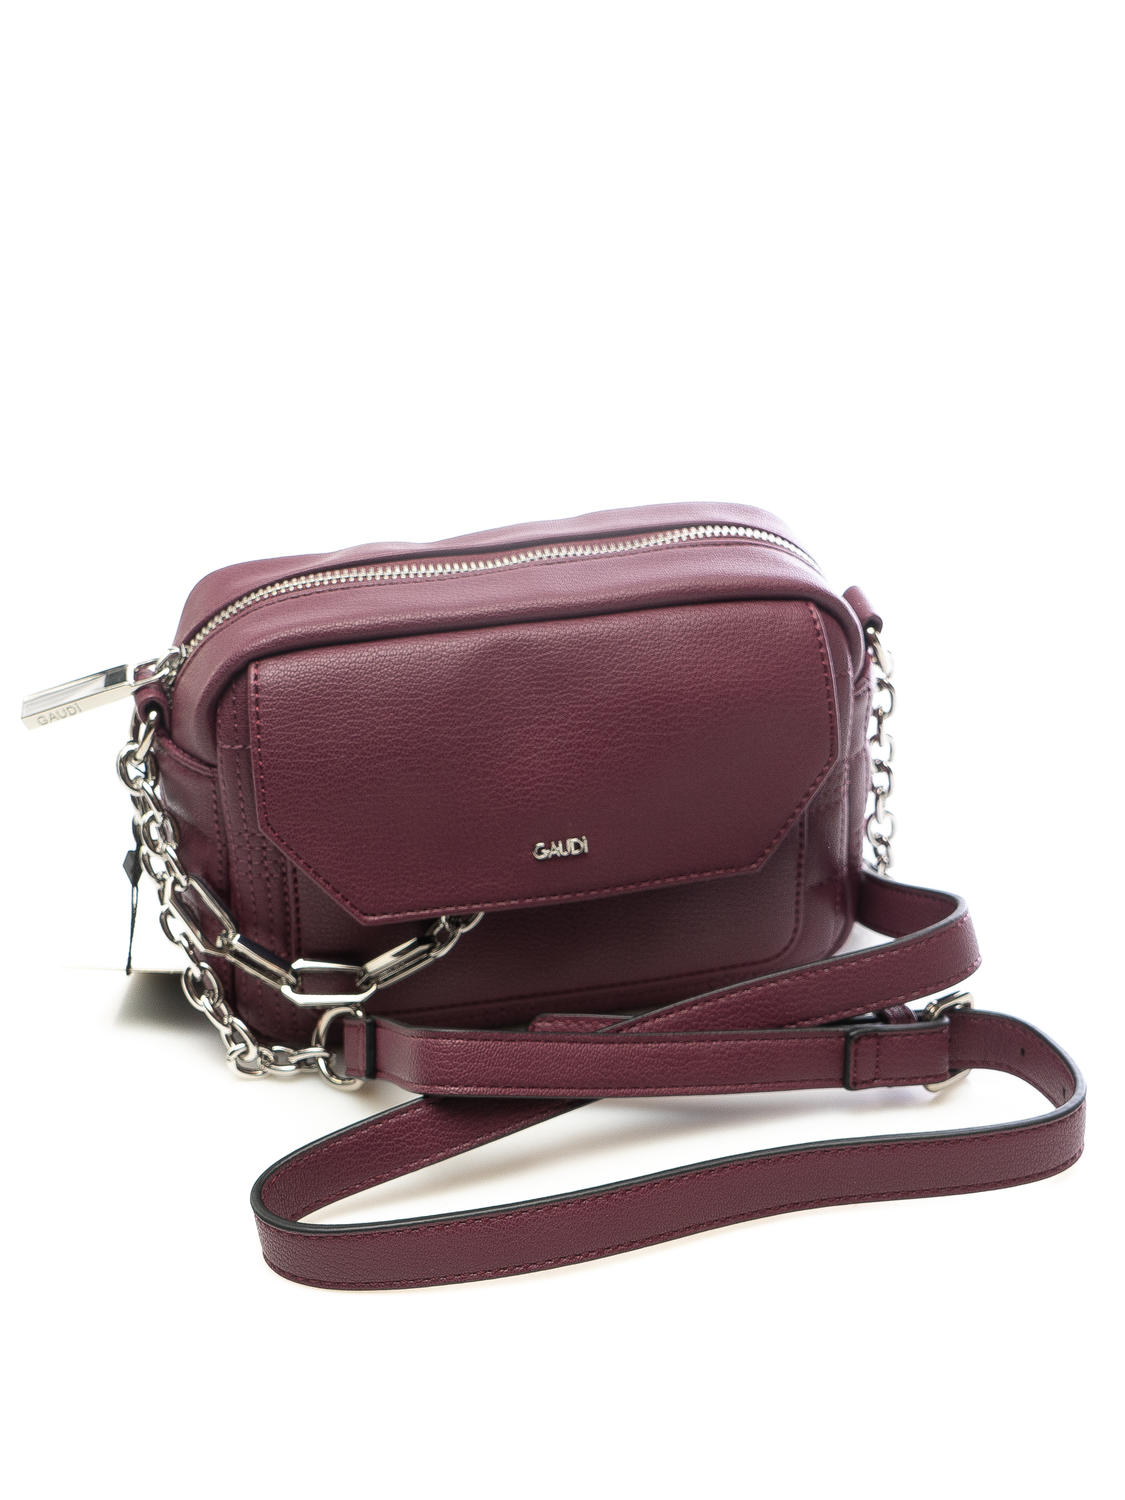 Women's Bags -  PEGGY Mini shoulder bag